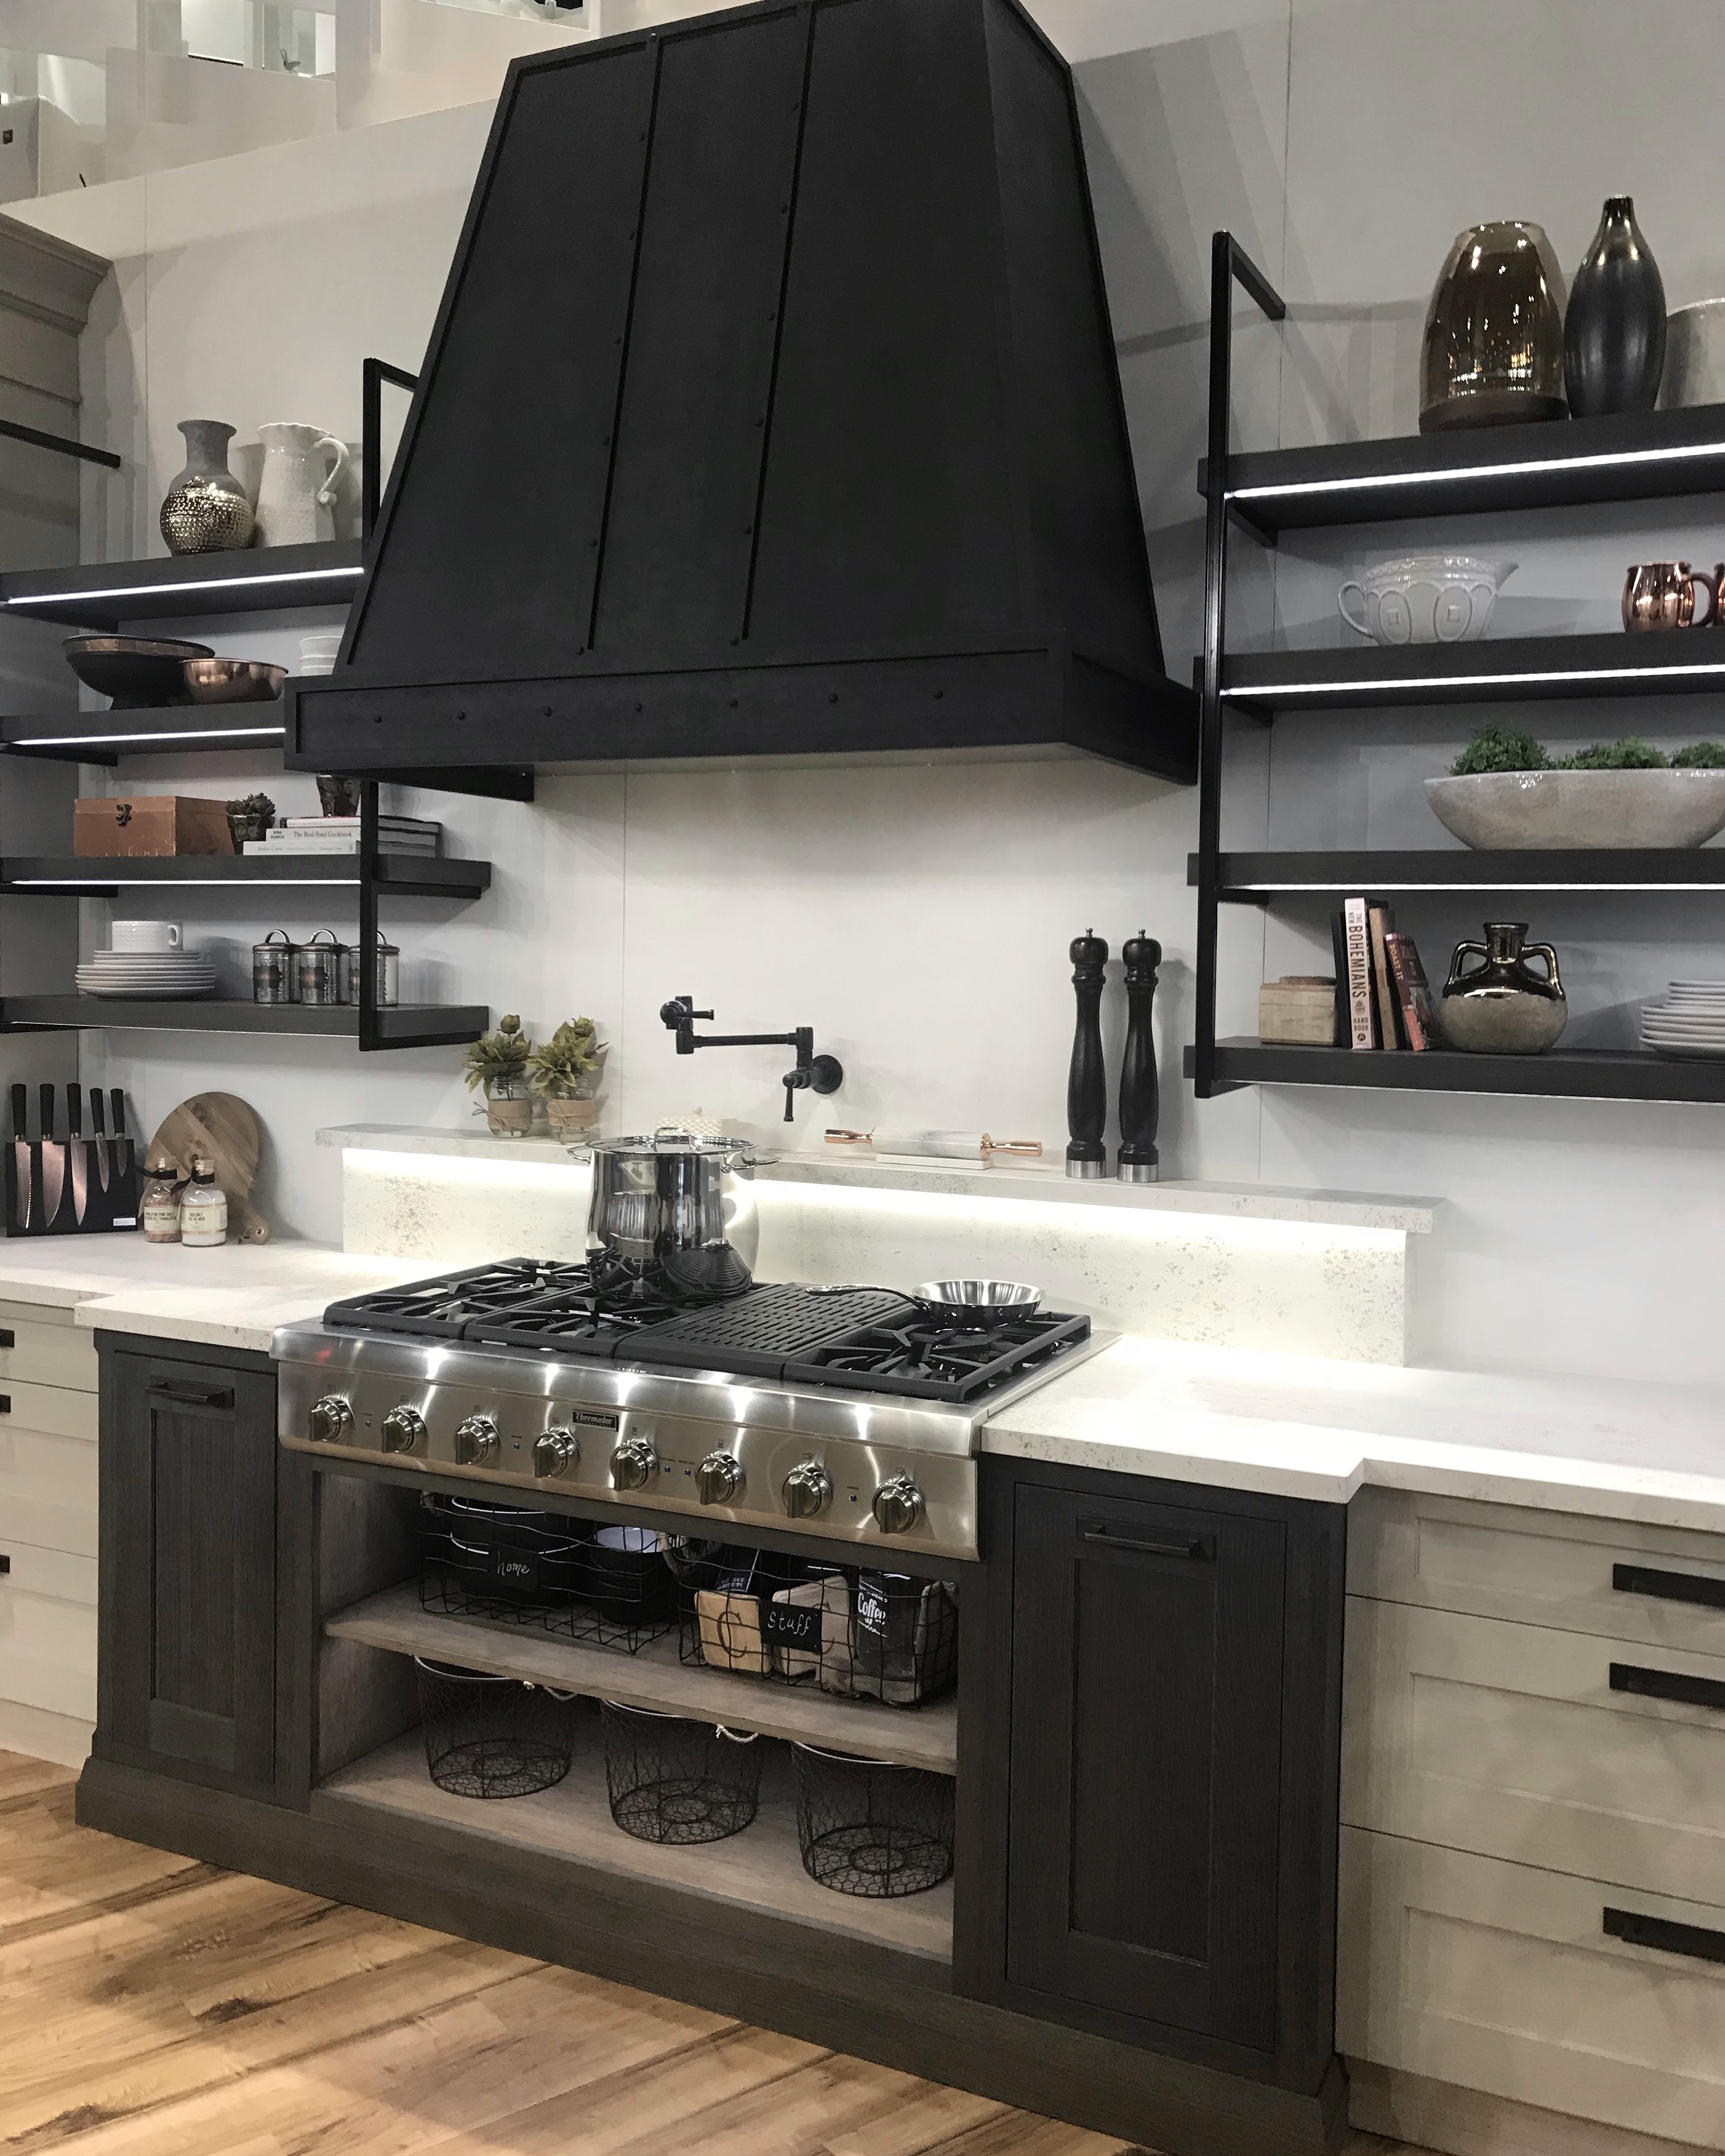 Kitchen Design Trends In 2018 Kitchen Trends 2018 The Experts Predict The Luxpad